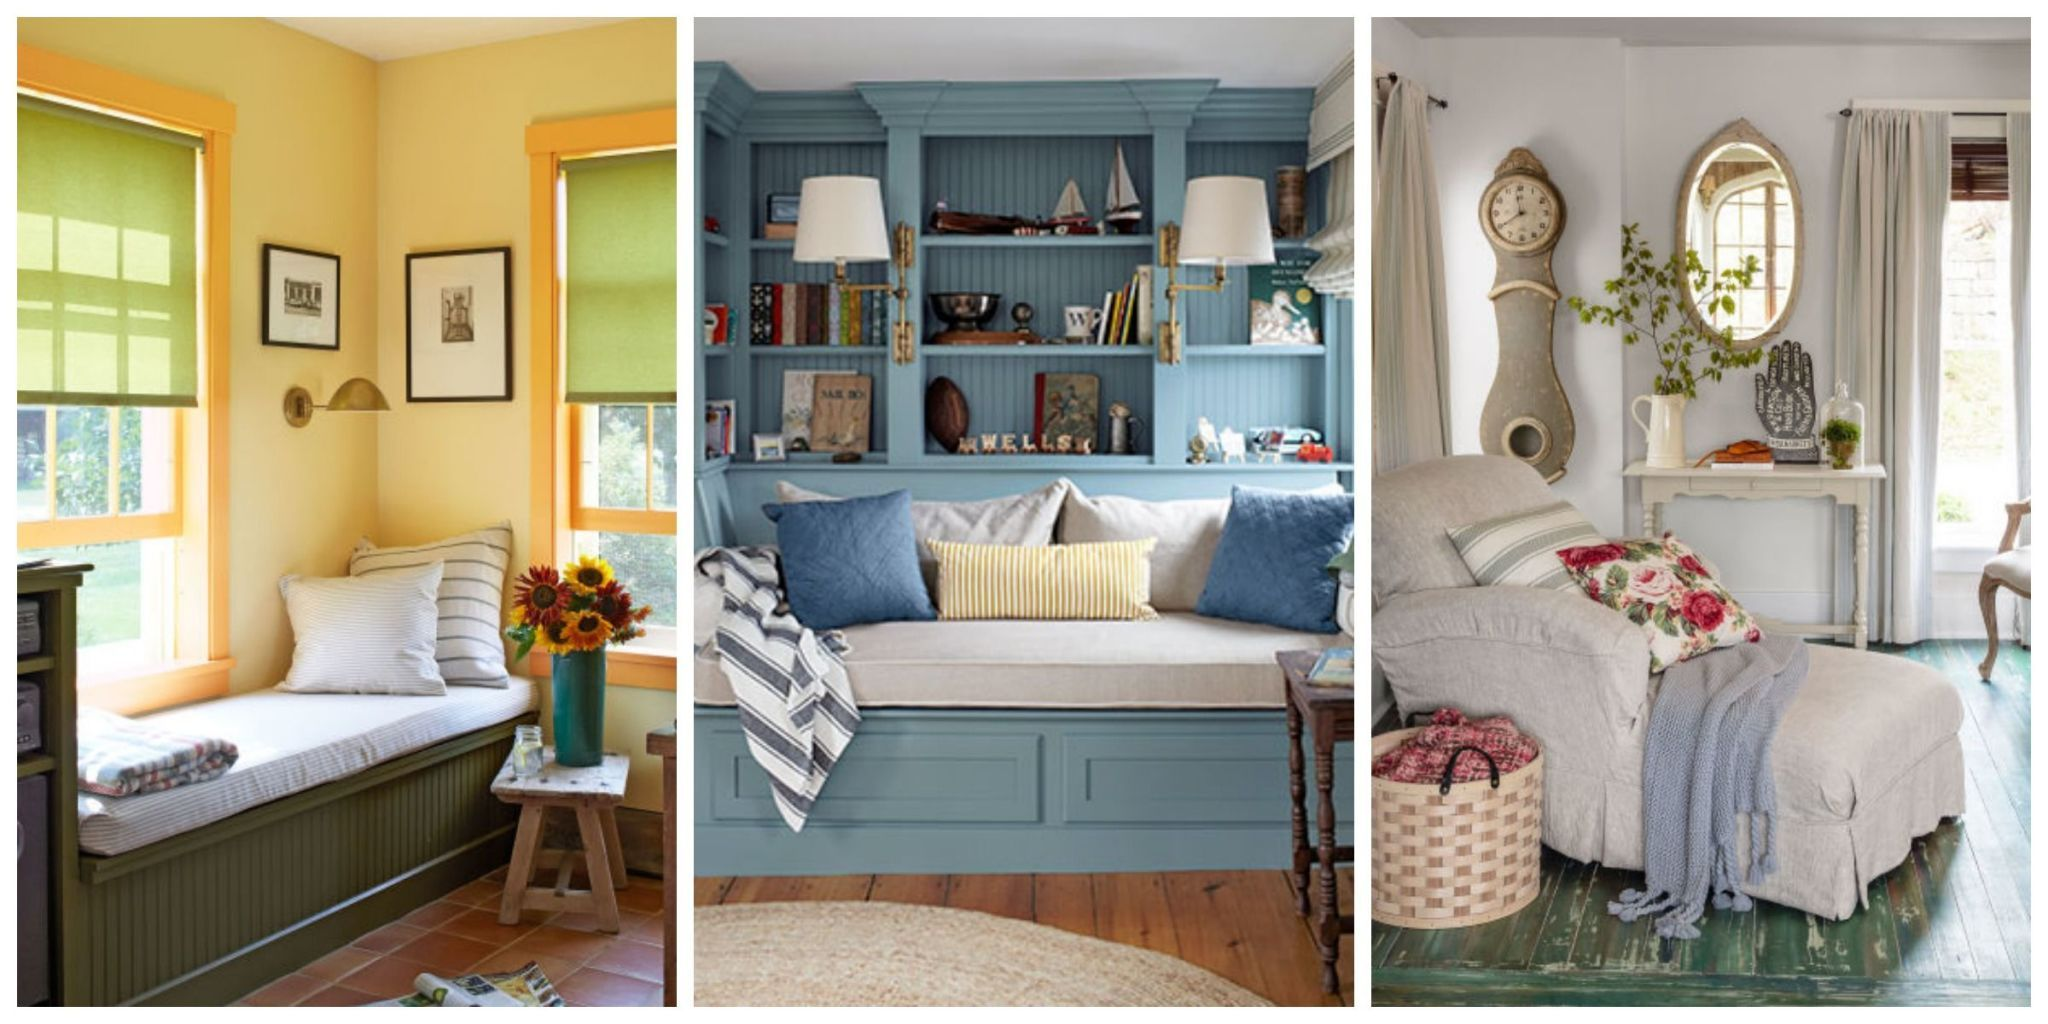 Because sometimes all you need in life is a comfy chair and a good book. & Reading Nooks - Cozy Decorating Ideas